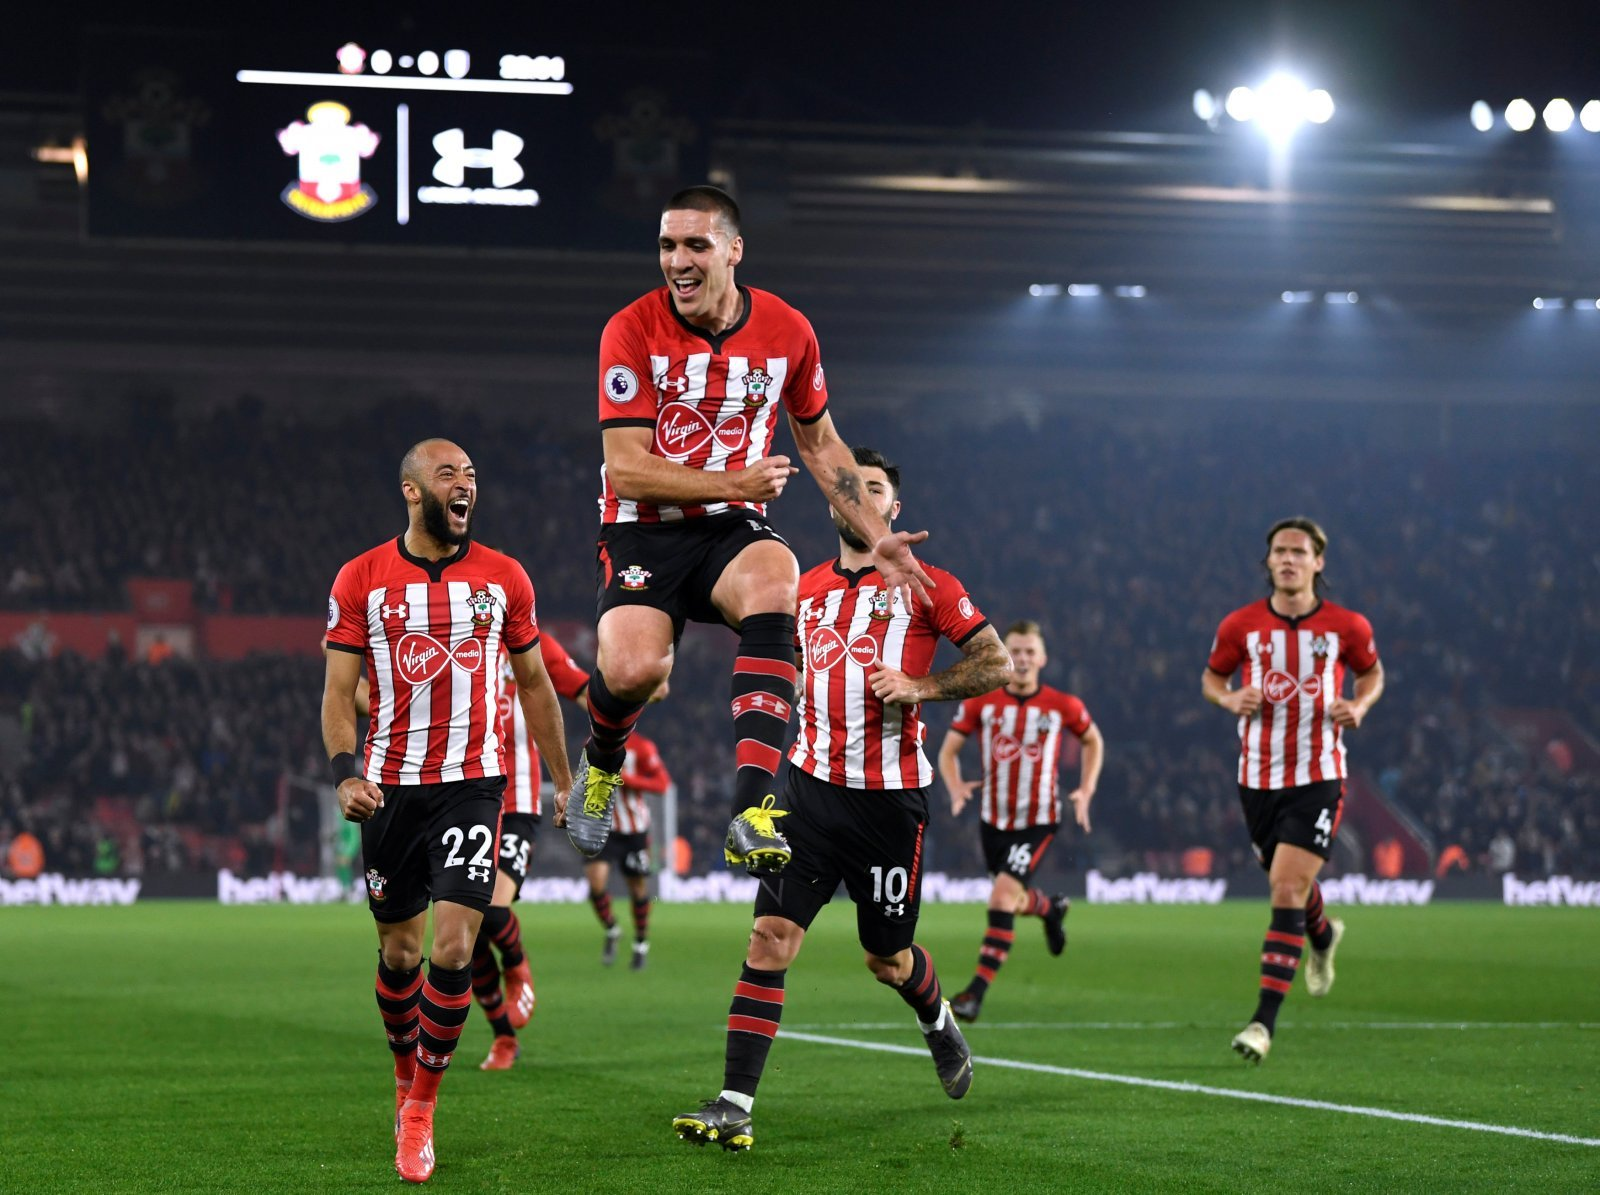 Southampton need to maintain positively to survive March onslaught